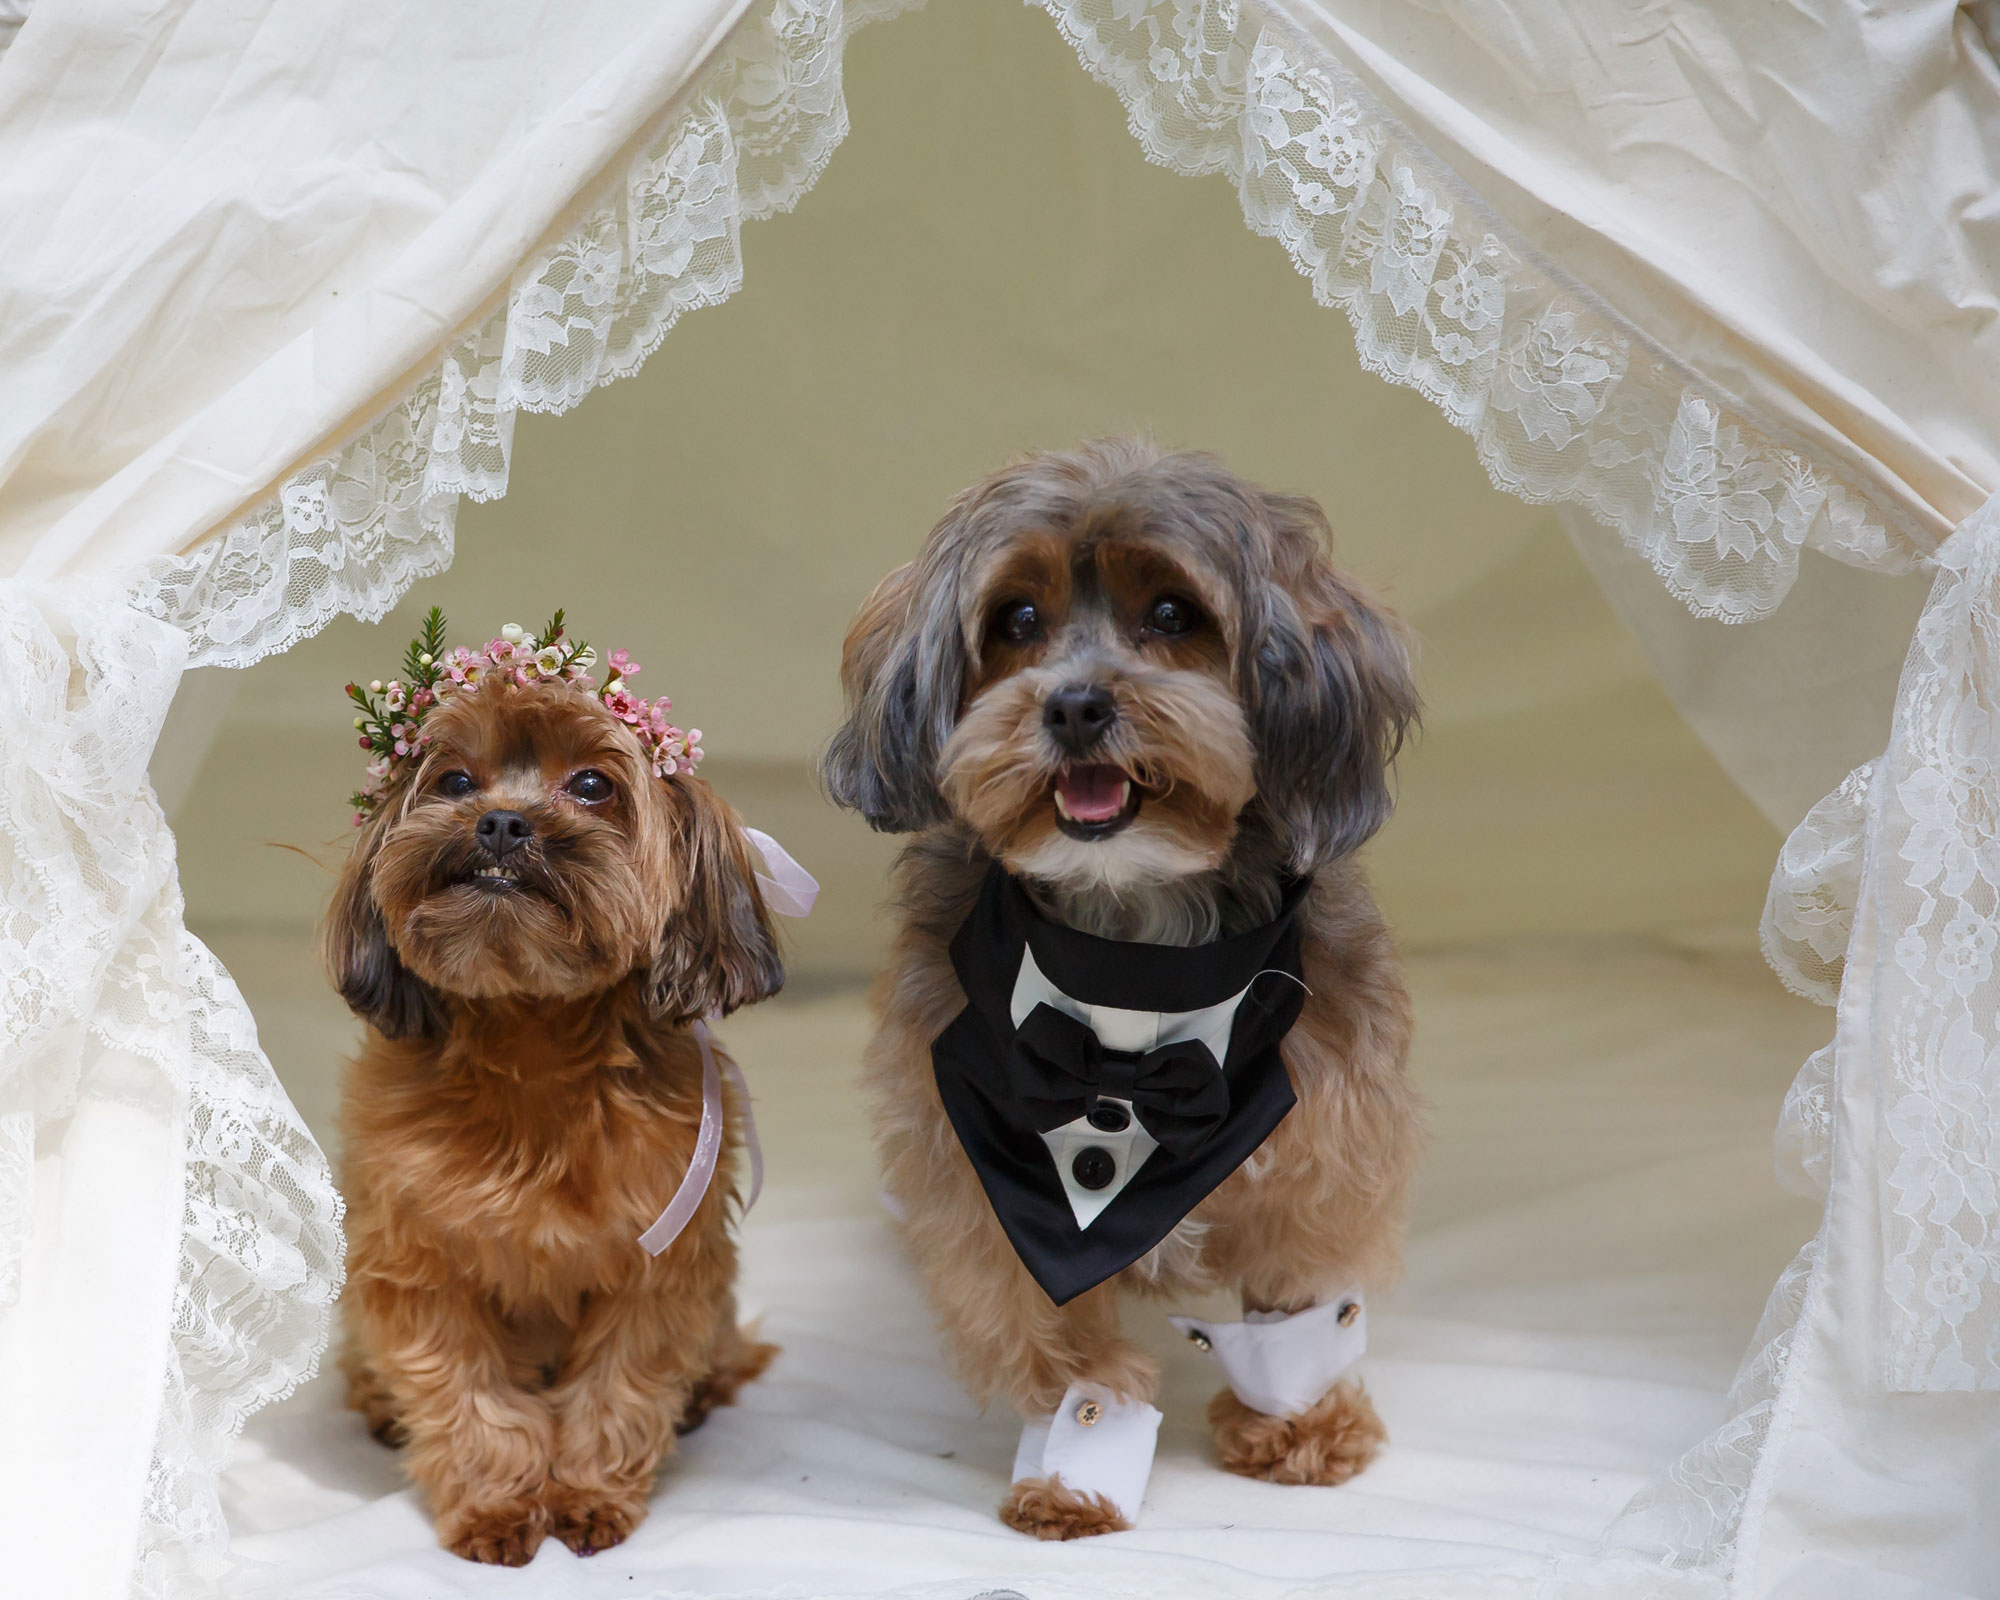 Dogs in Weddings – 15 Adorable Pups Dressed for a Celebration!